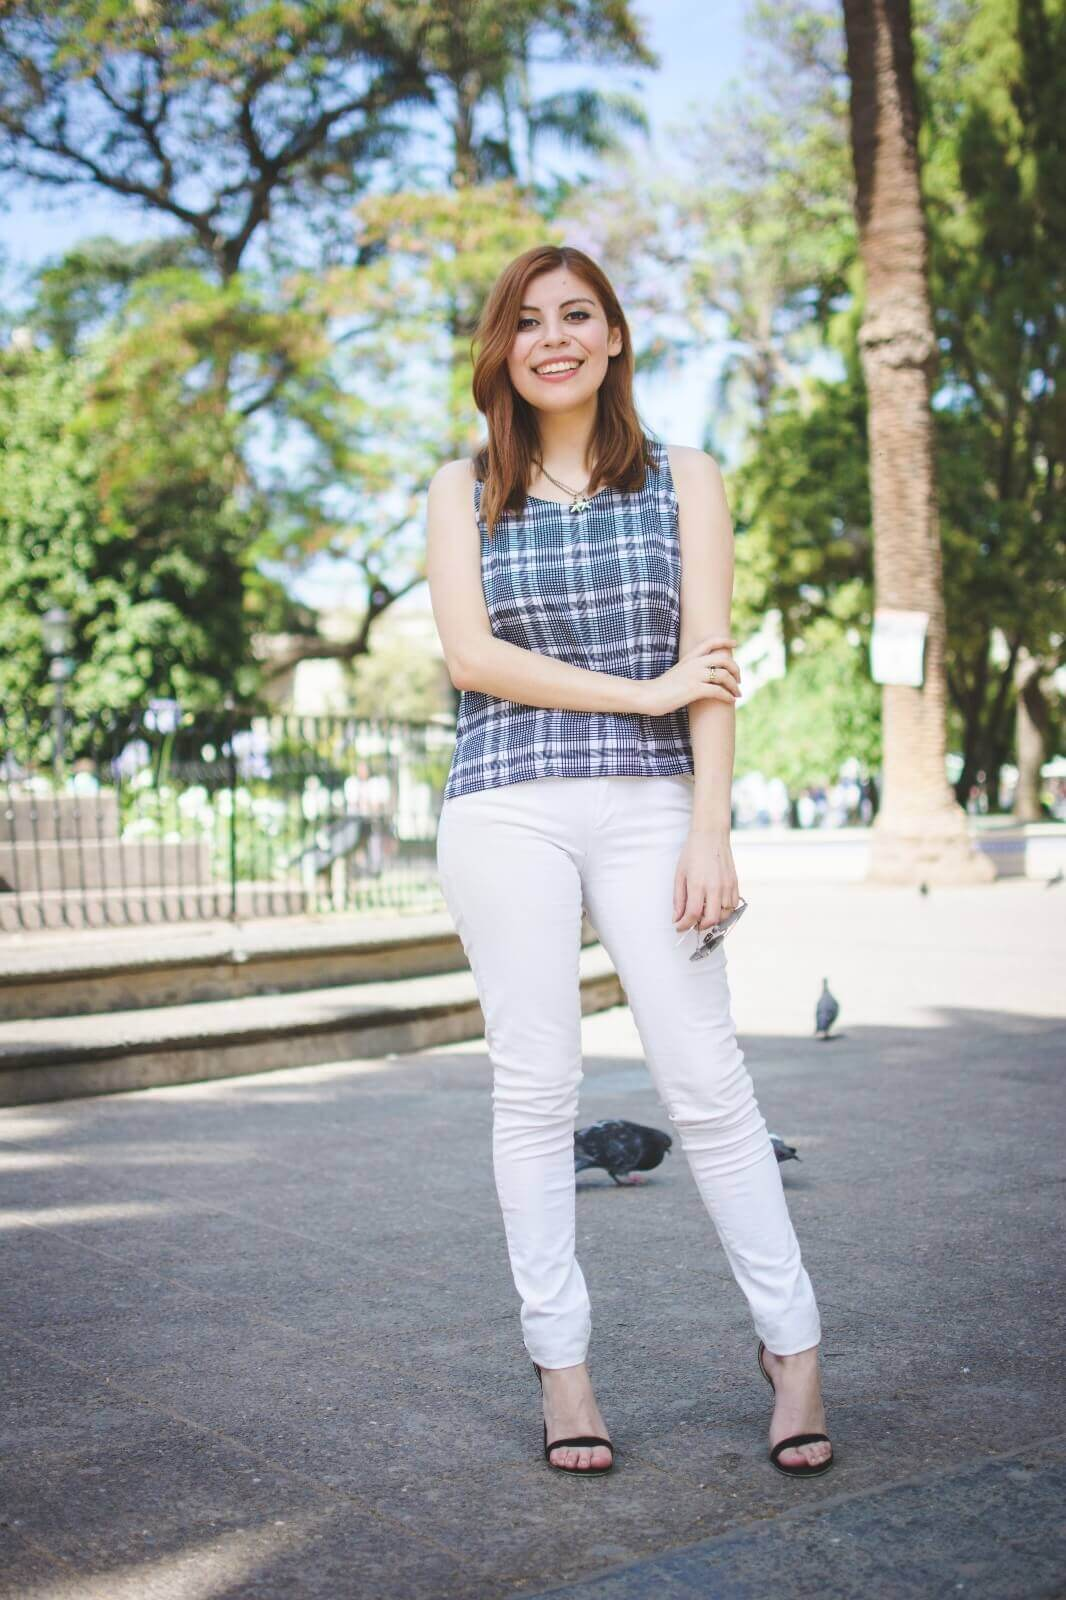 black-and-white-top-skinny-jeans-deborah-ferrero-style-by-deb-gamiss-sandals-streetstyle06